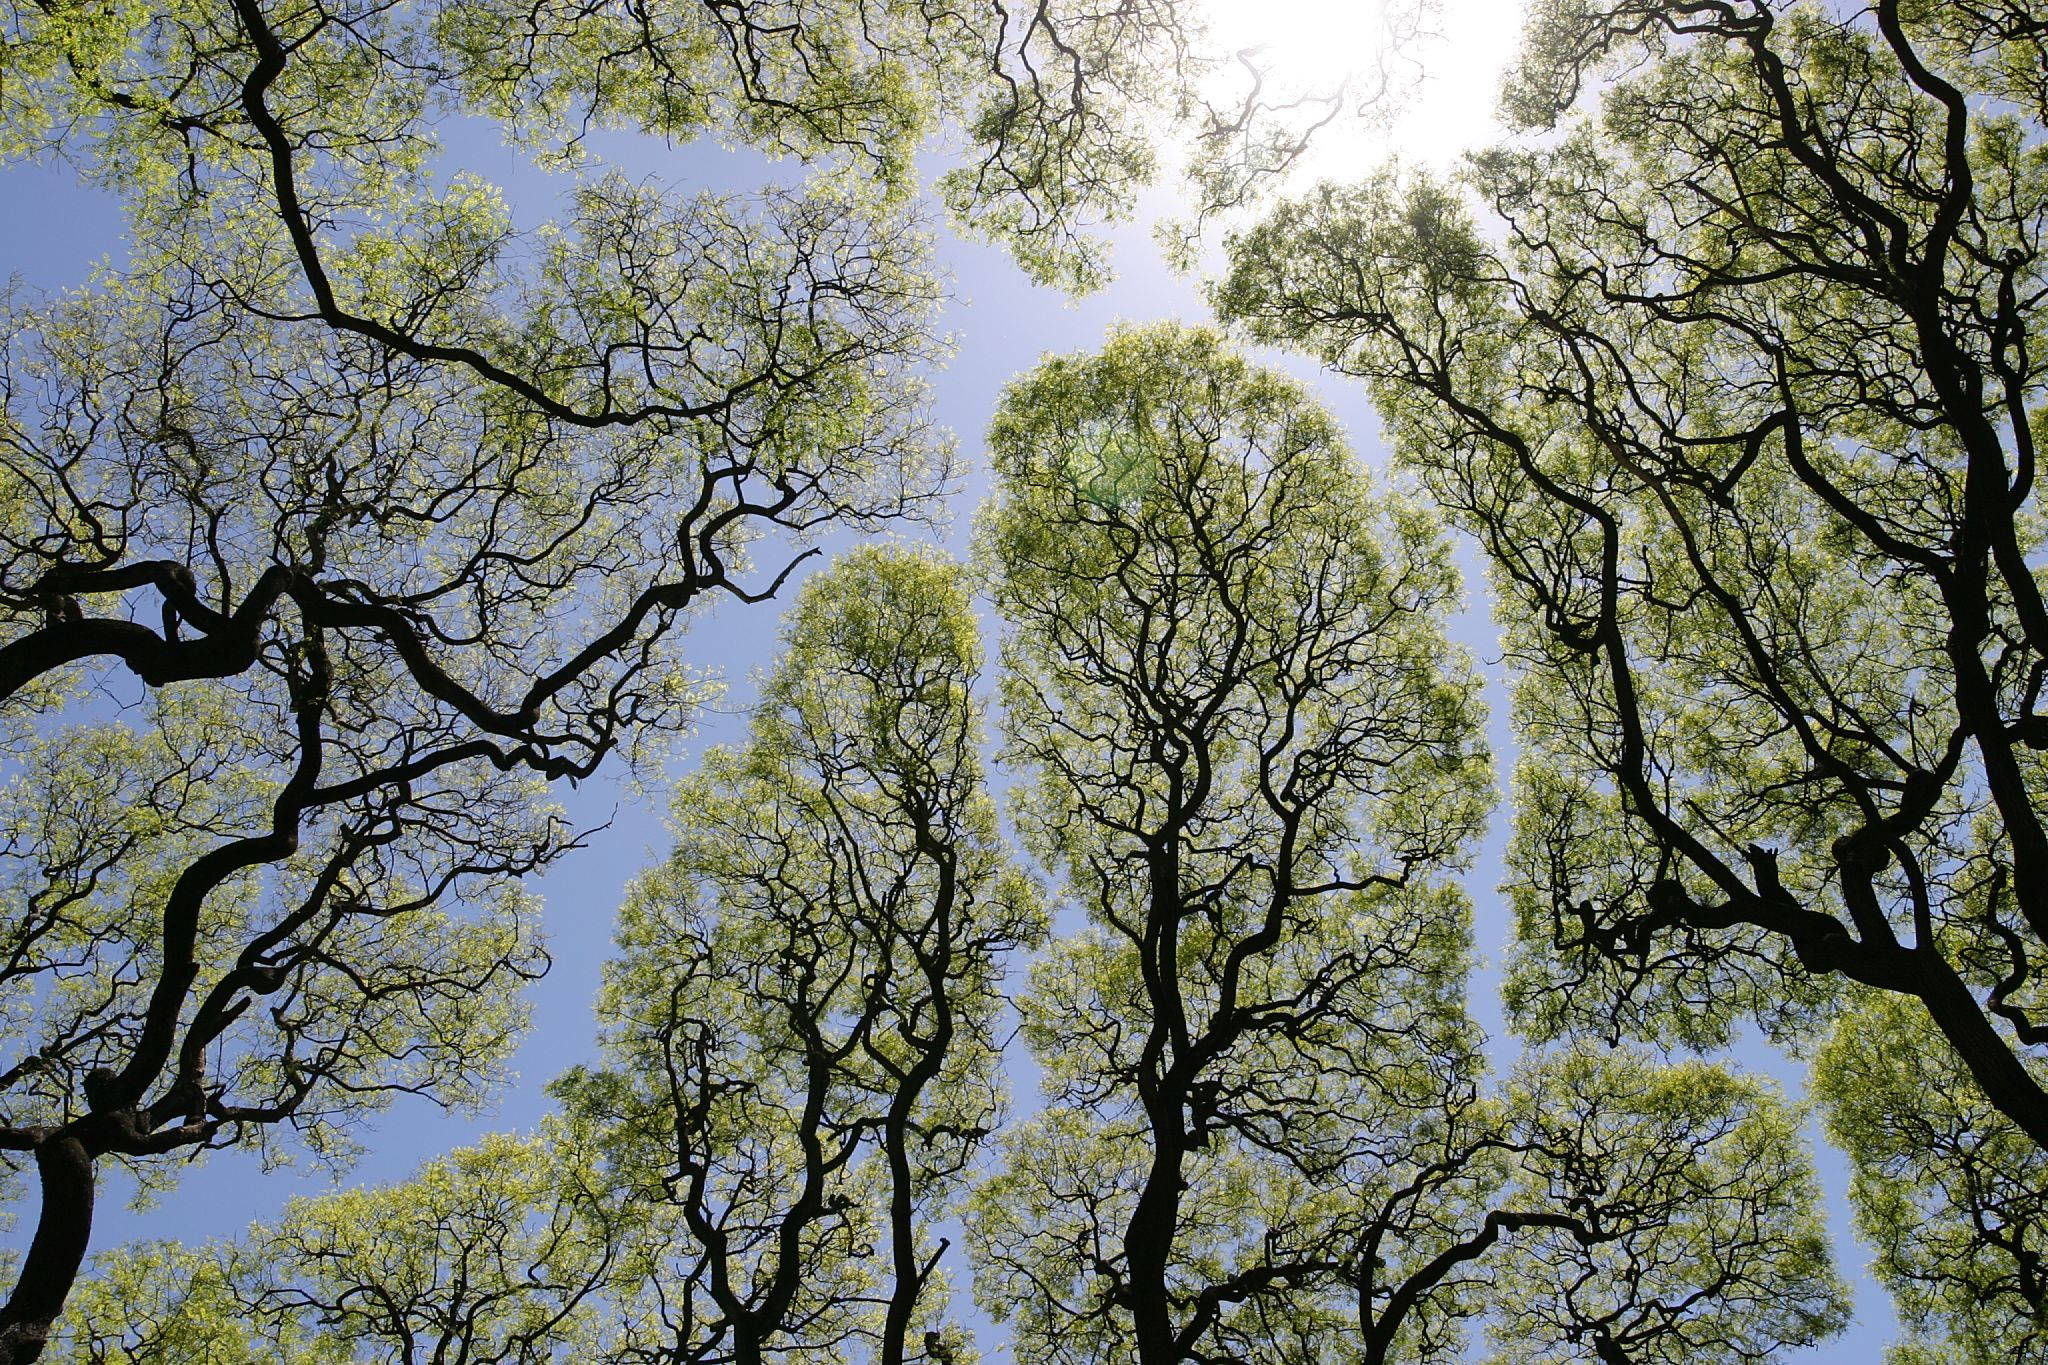 Several trees nestle in the space canopy together with distances between their leaves